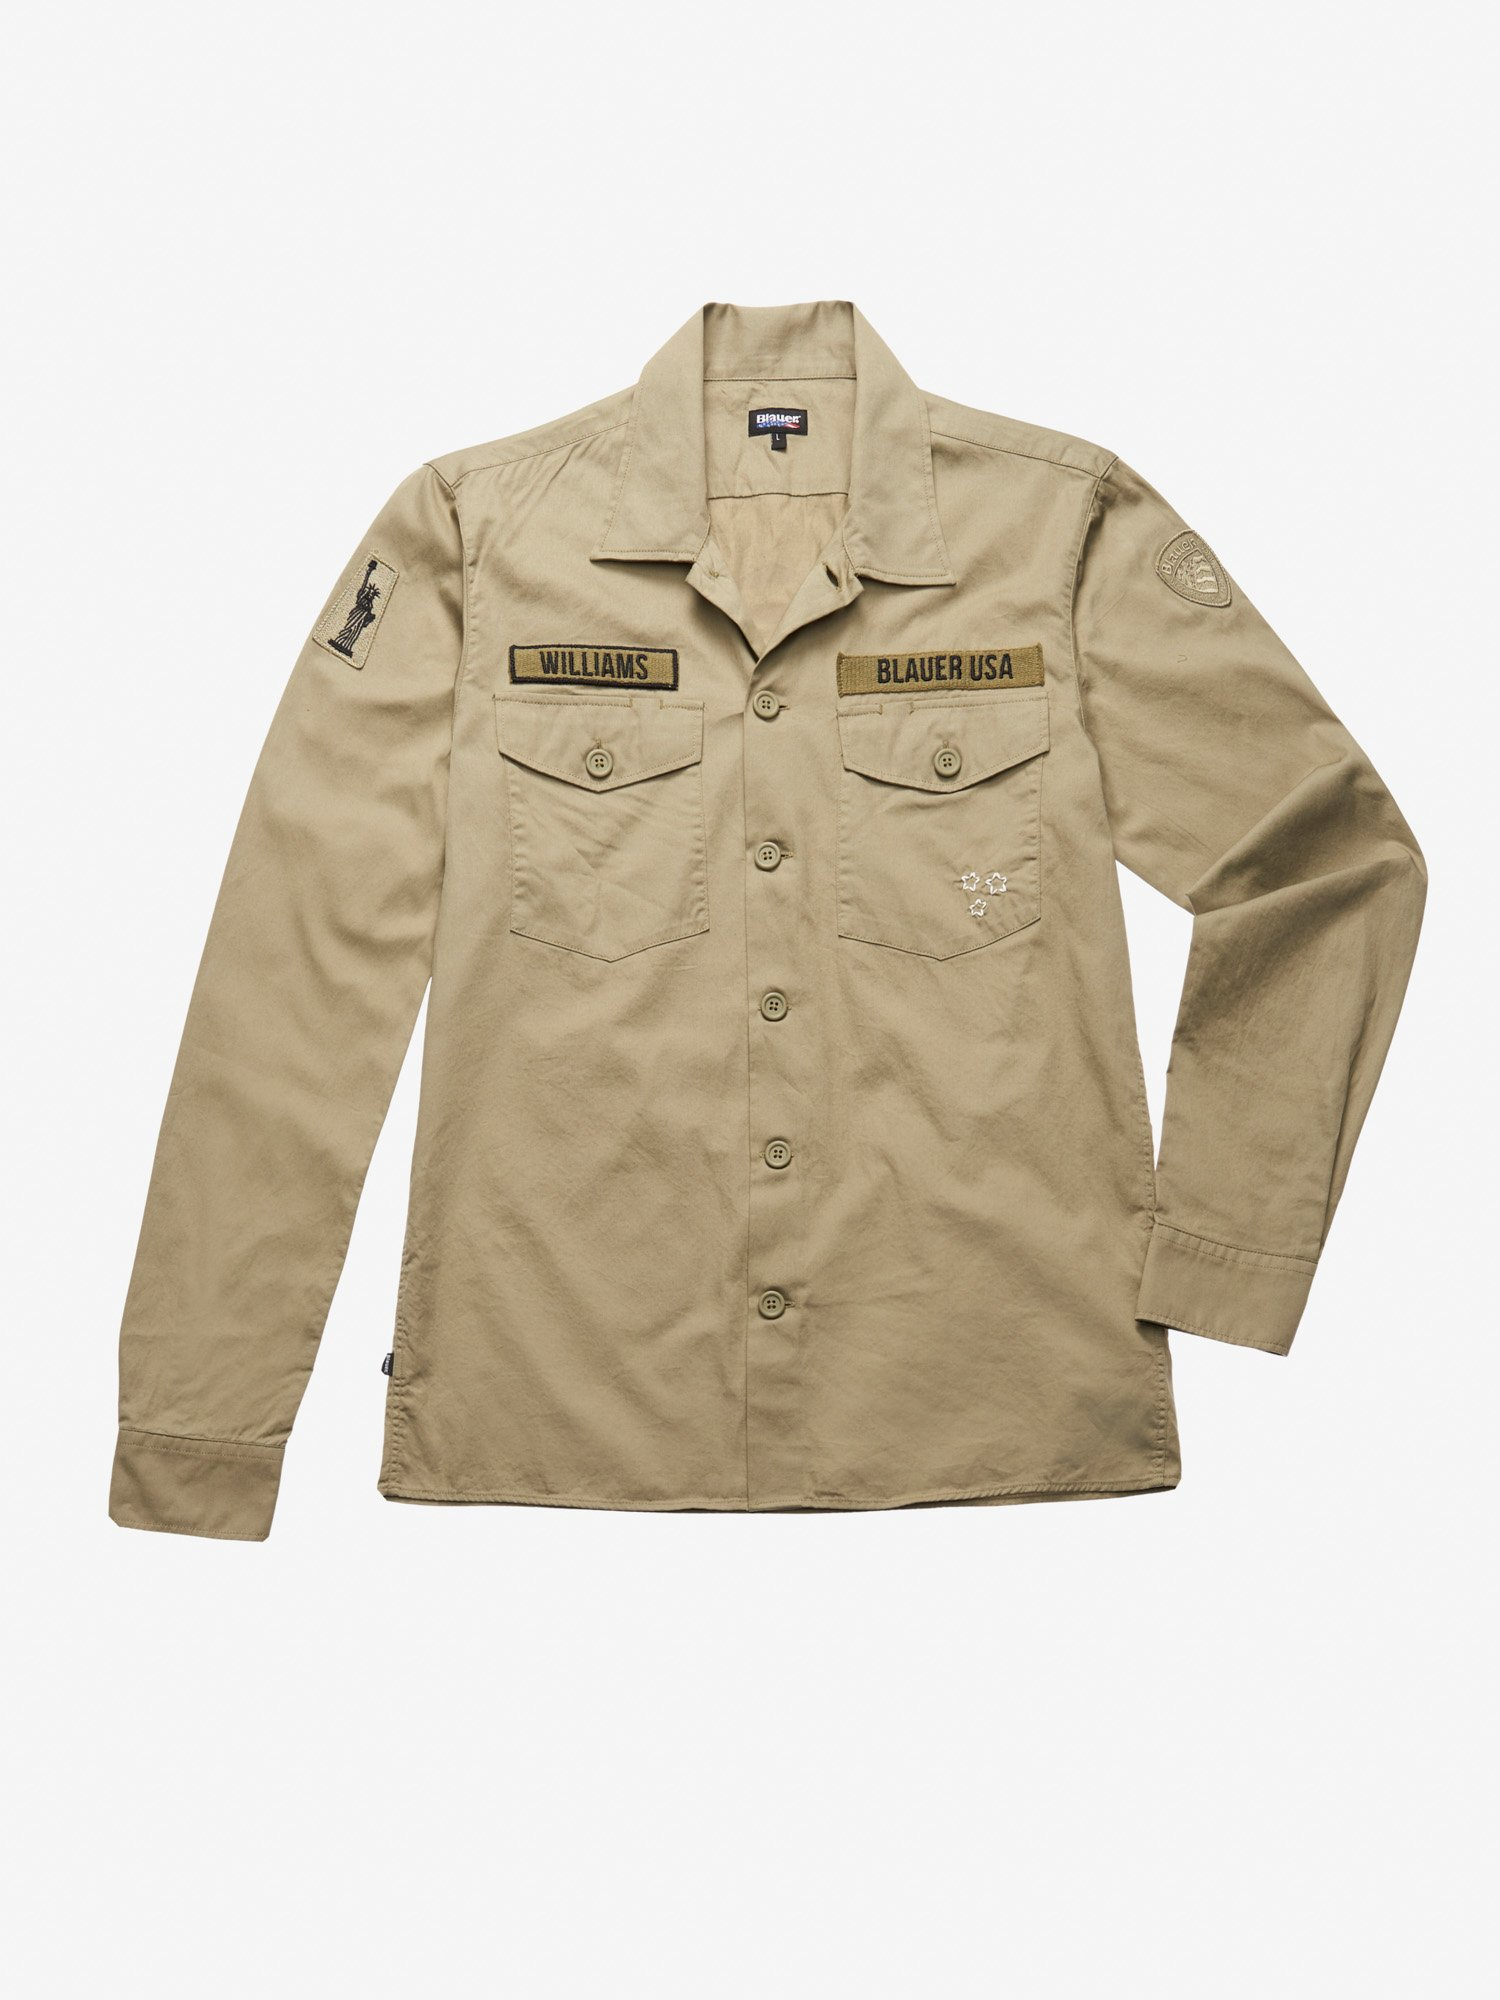 Blauer - CAMICIA MILITARY WILLIAMS - Verde Polverso - Blauer